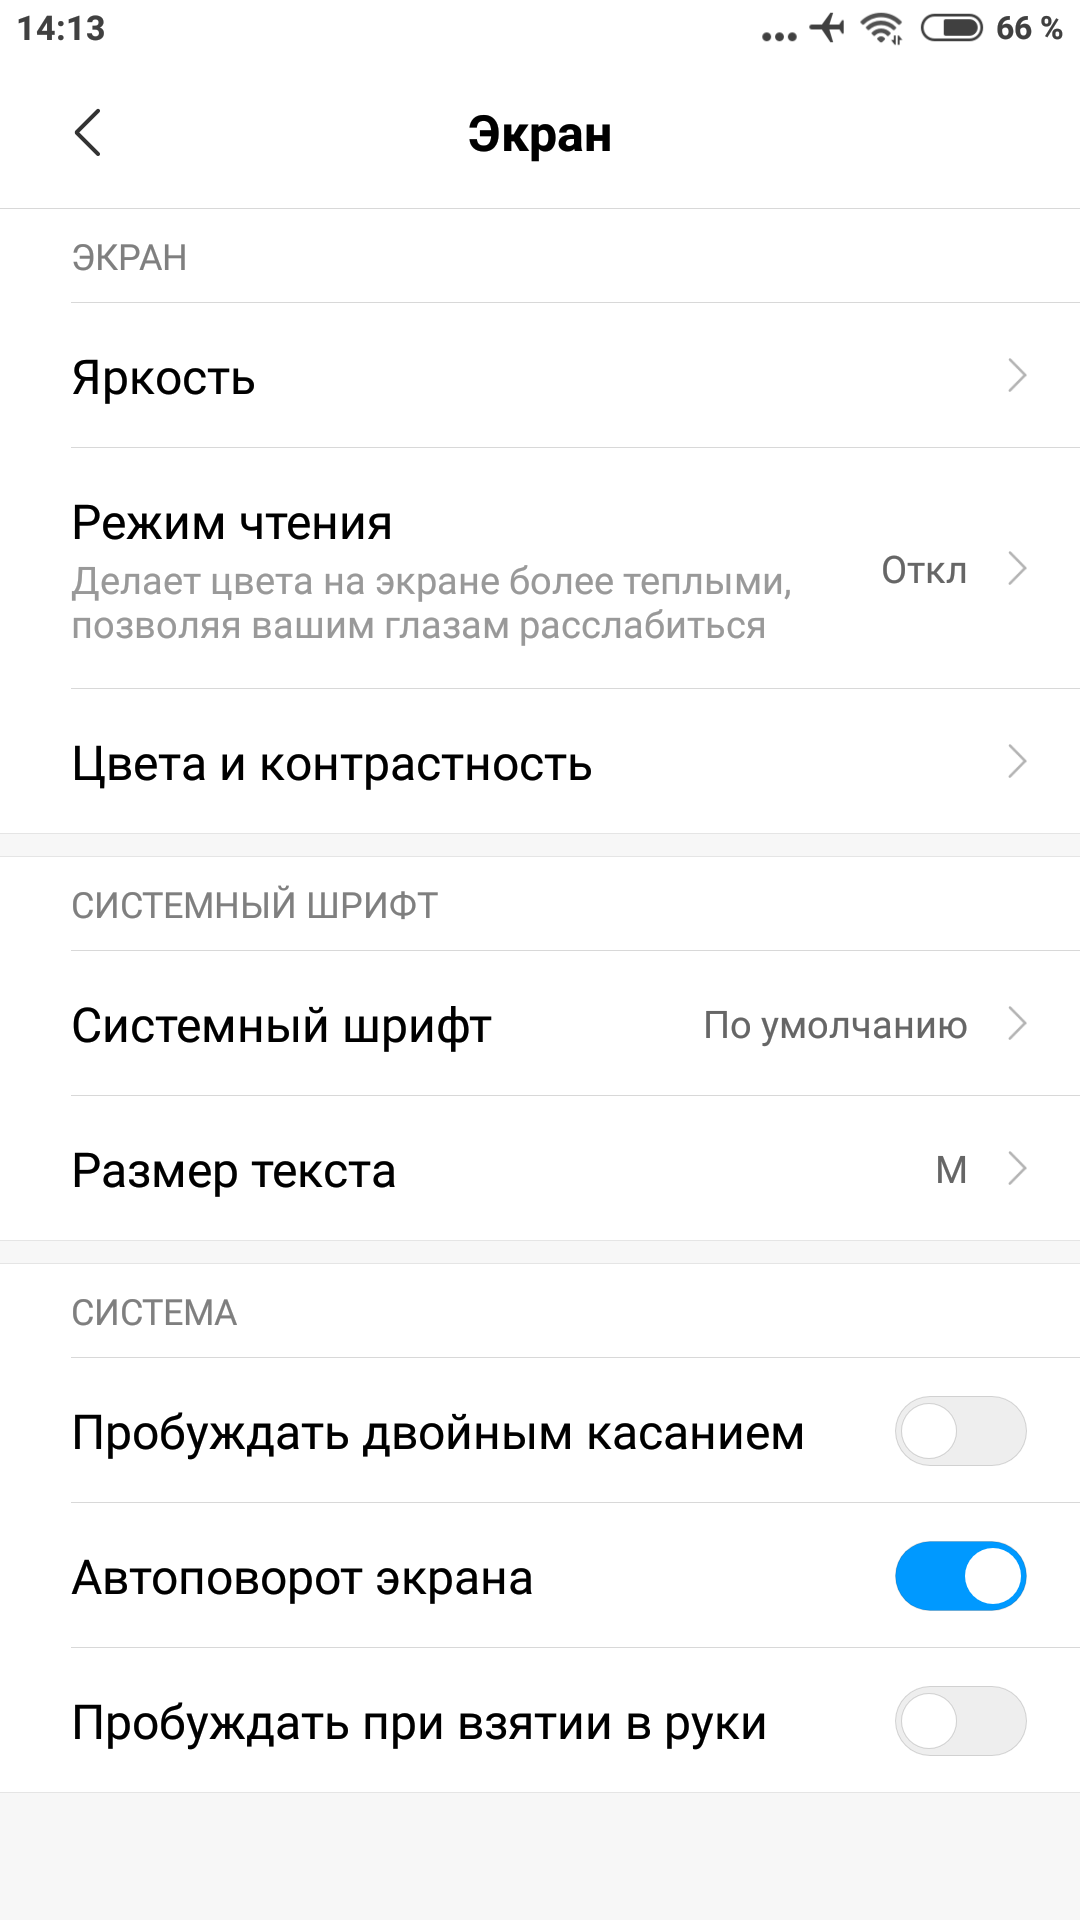 Screenshot_2018-08-25-14-13-08-099_com.android.settings.png